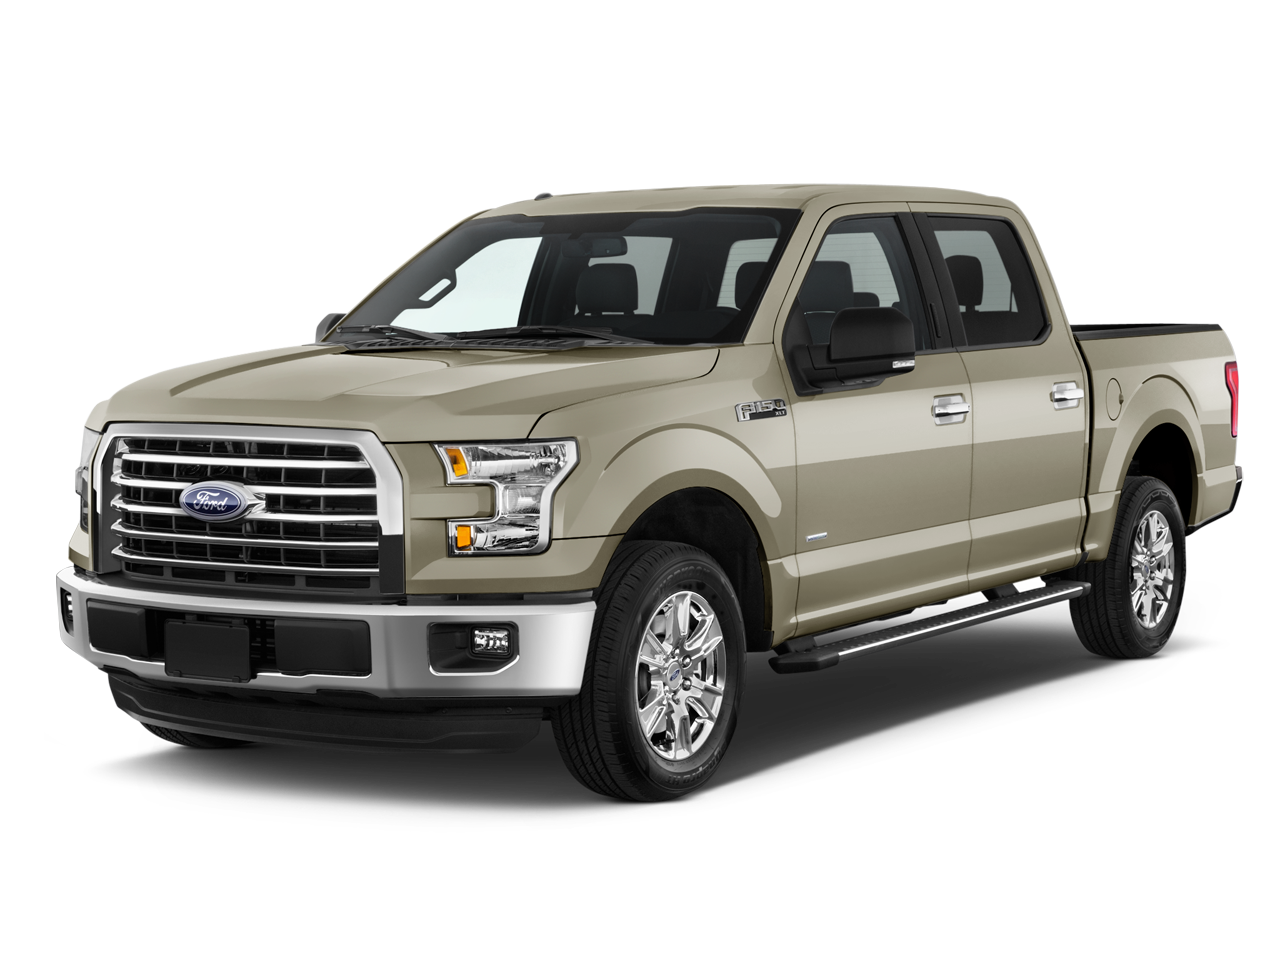 new caribou metallic f 150 for sale roberts auto group. Black Bedroom Furniture Sets. Home Design Ideas